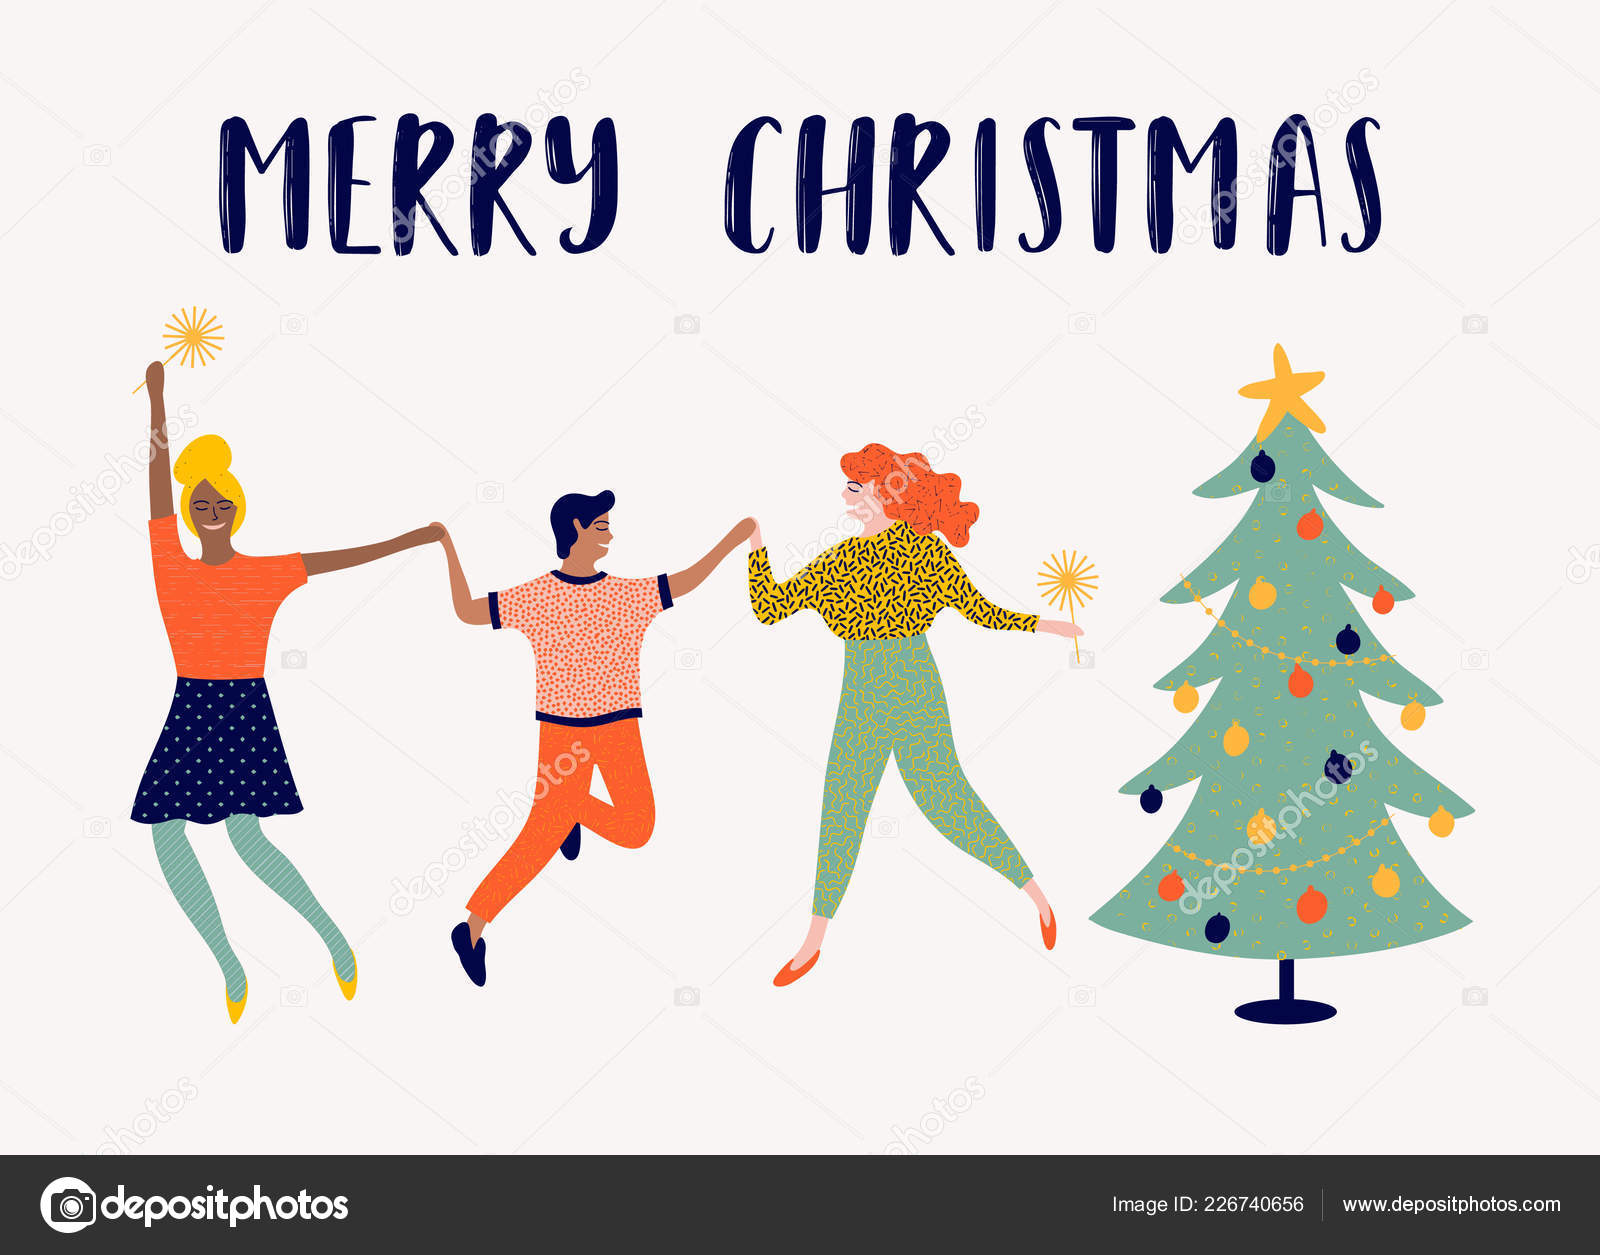 Christmas Illustration.Merry Christmas Illustration Funny People Who Celebrate